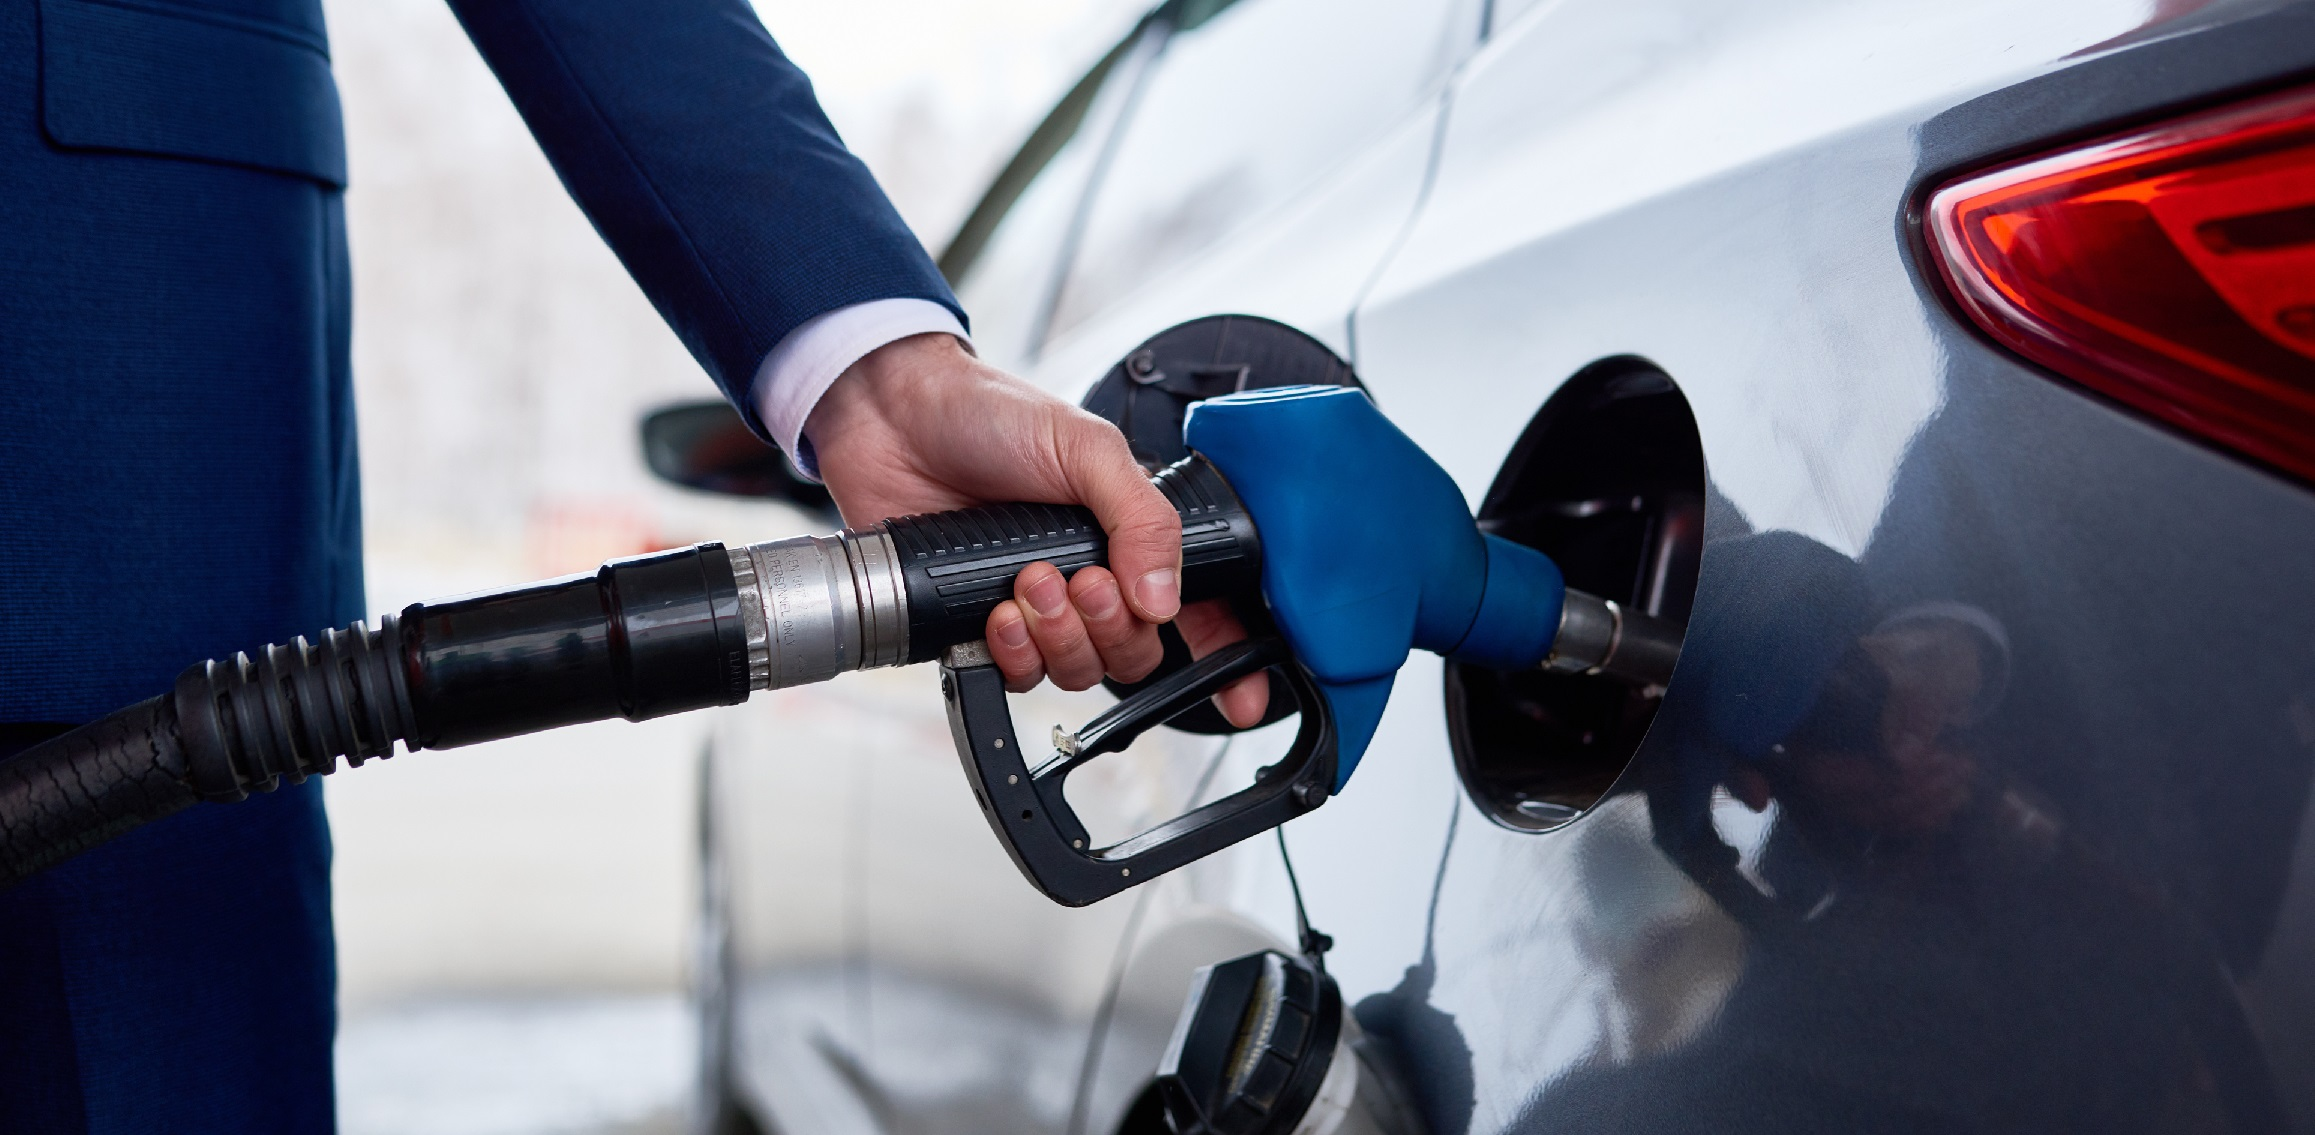 Rising fuel prices